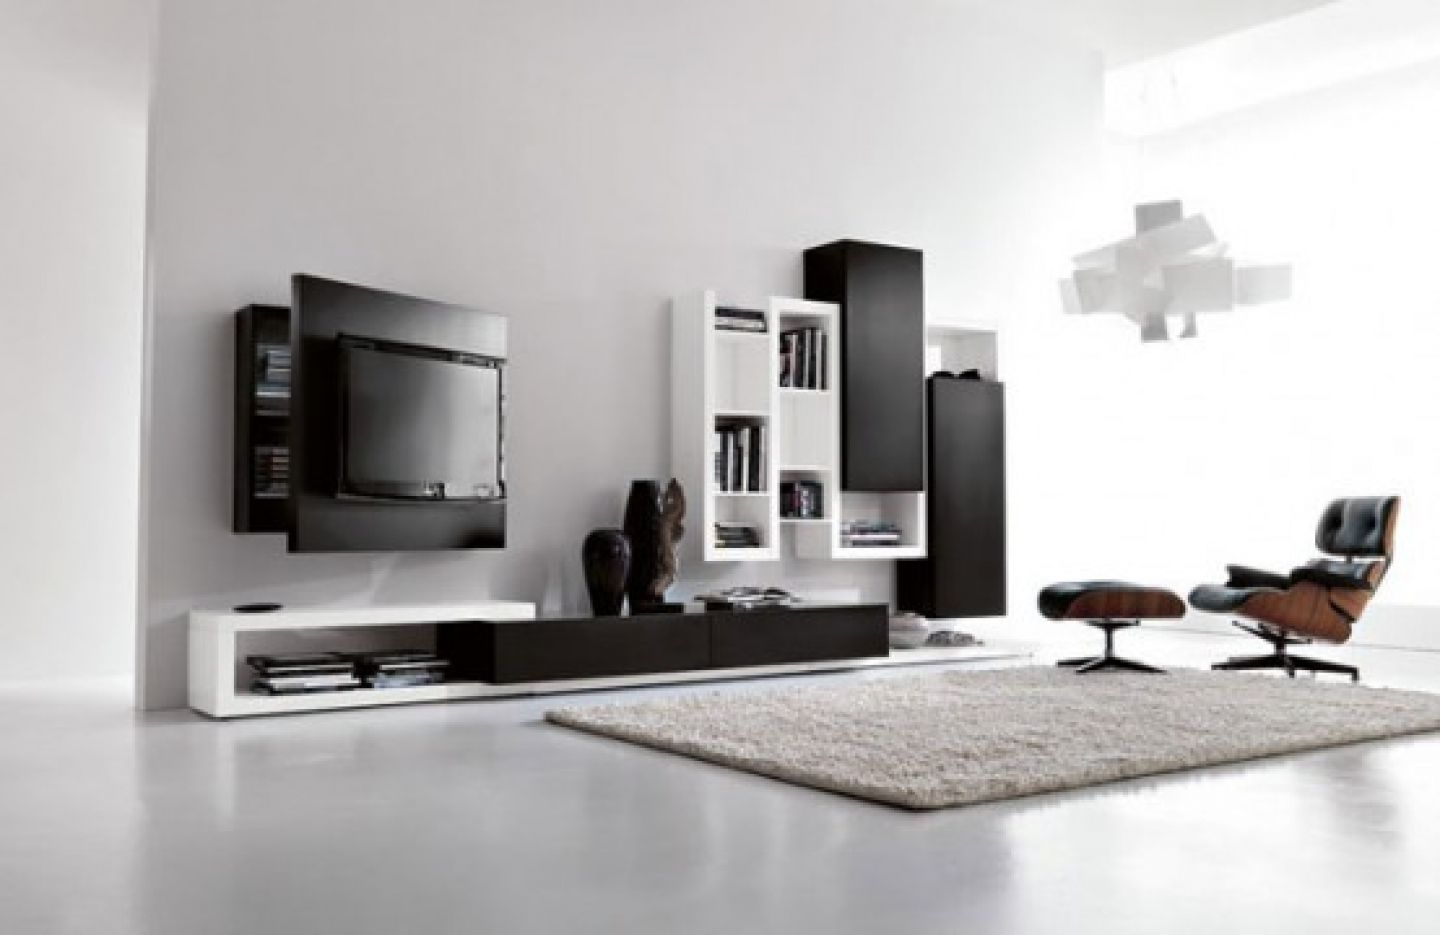 Lcd Tv Furniture For Living Room Living Room Luxurious White Design Black Wall Units Bookshelf Rug